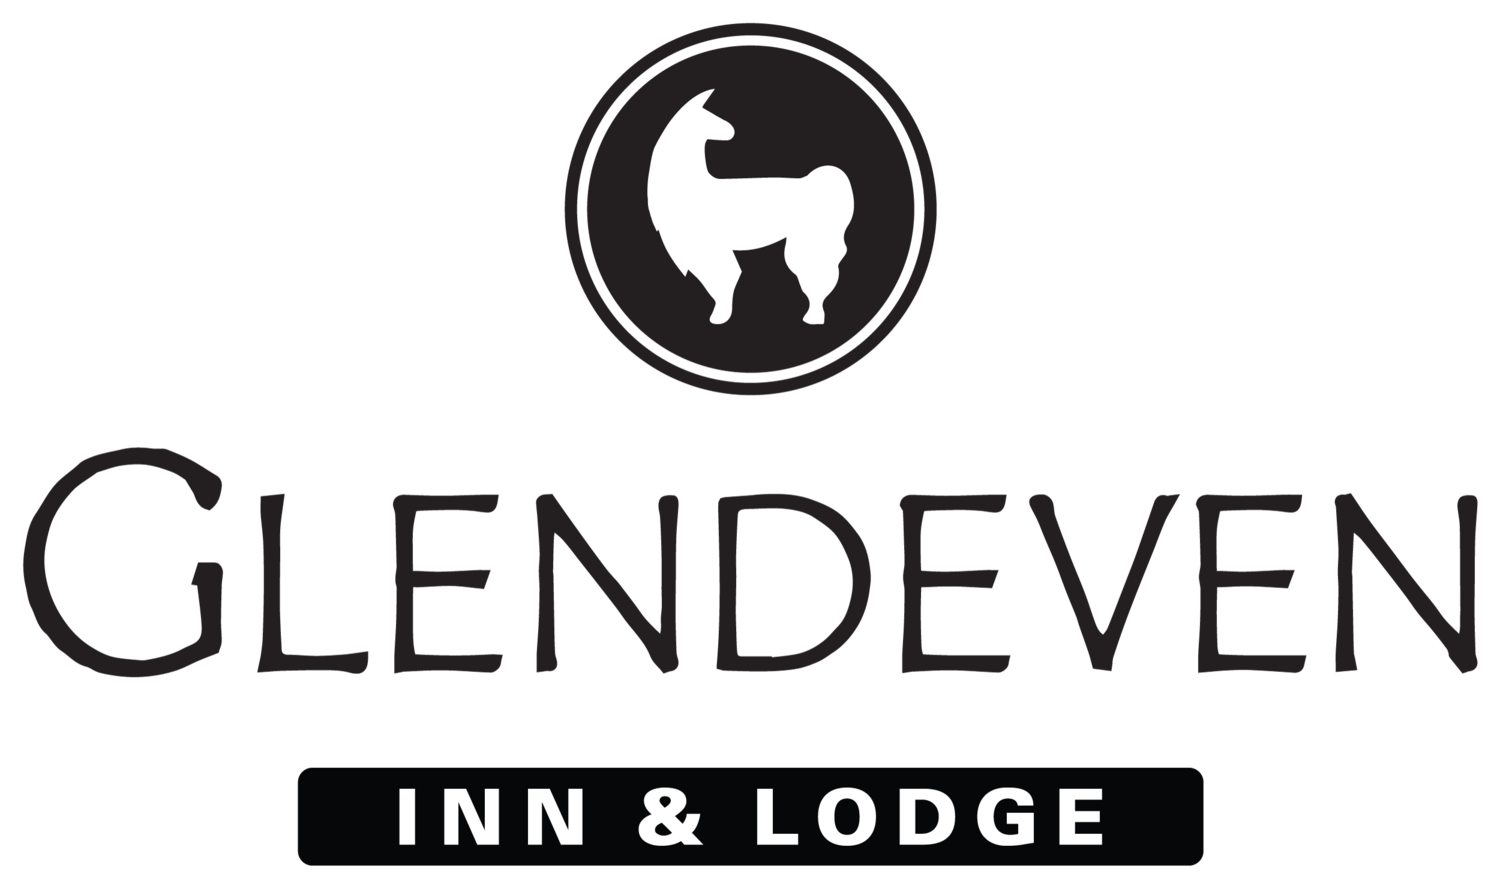 Glendeven Inn & Lodge